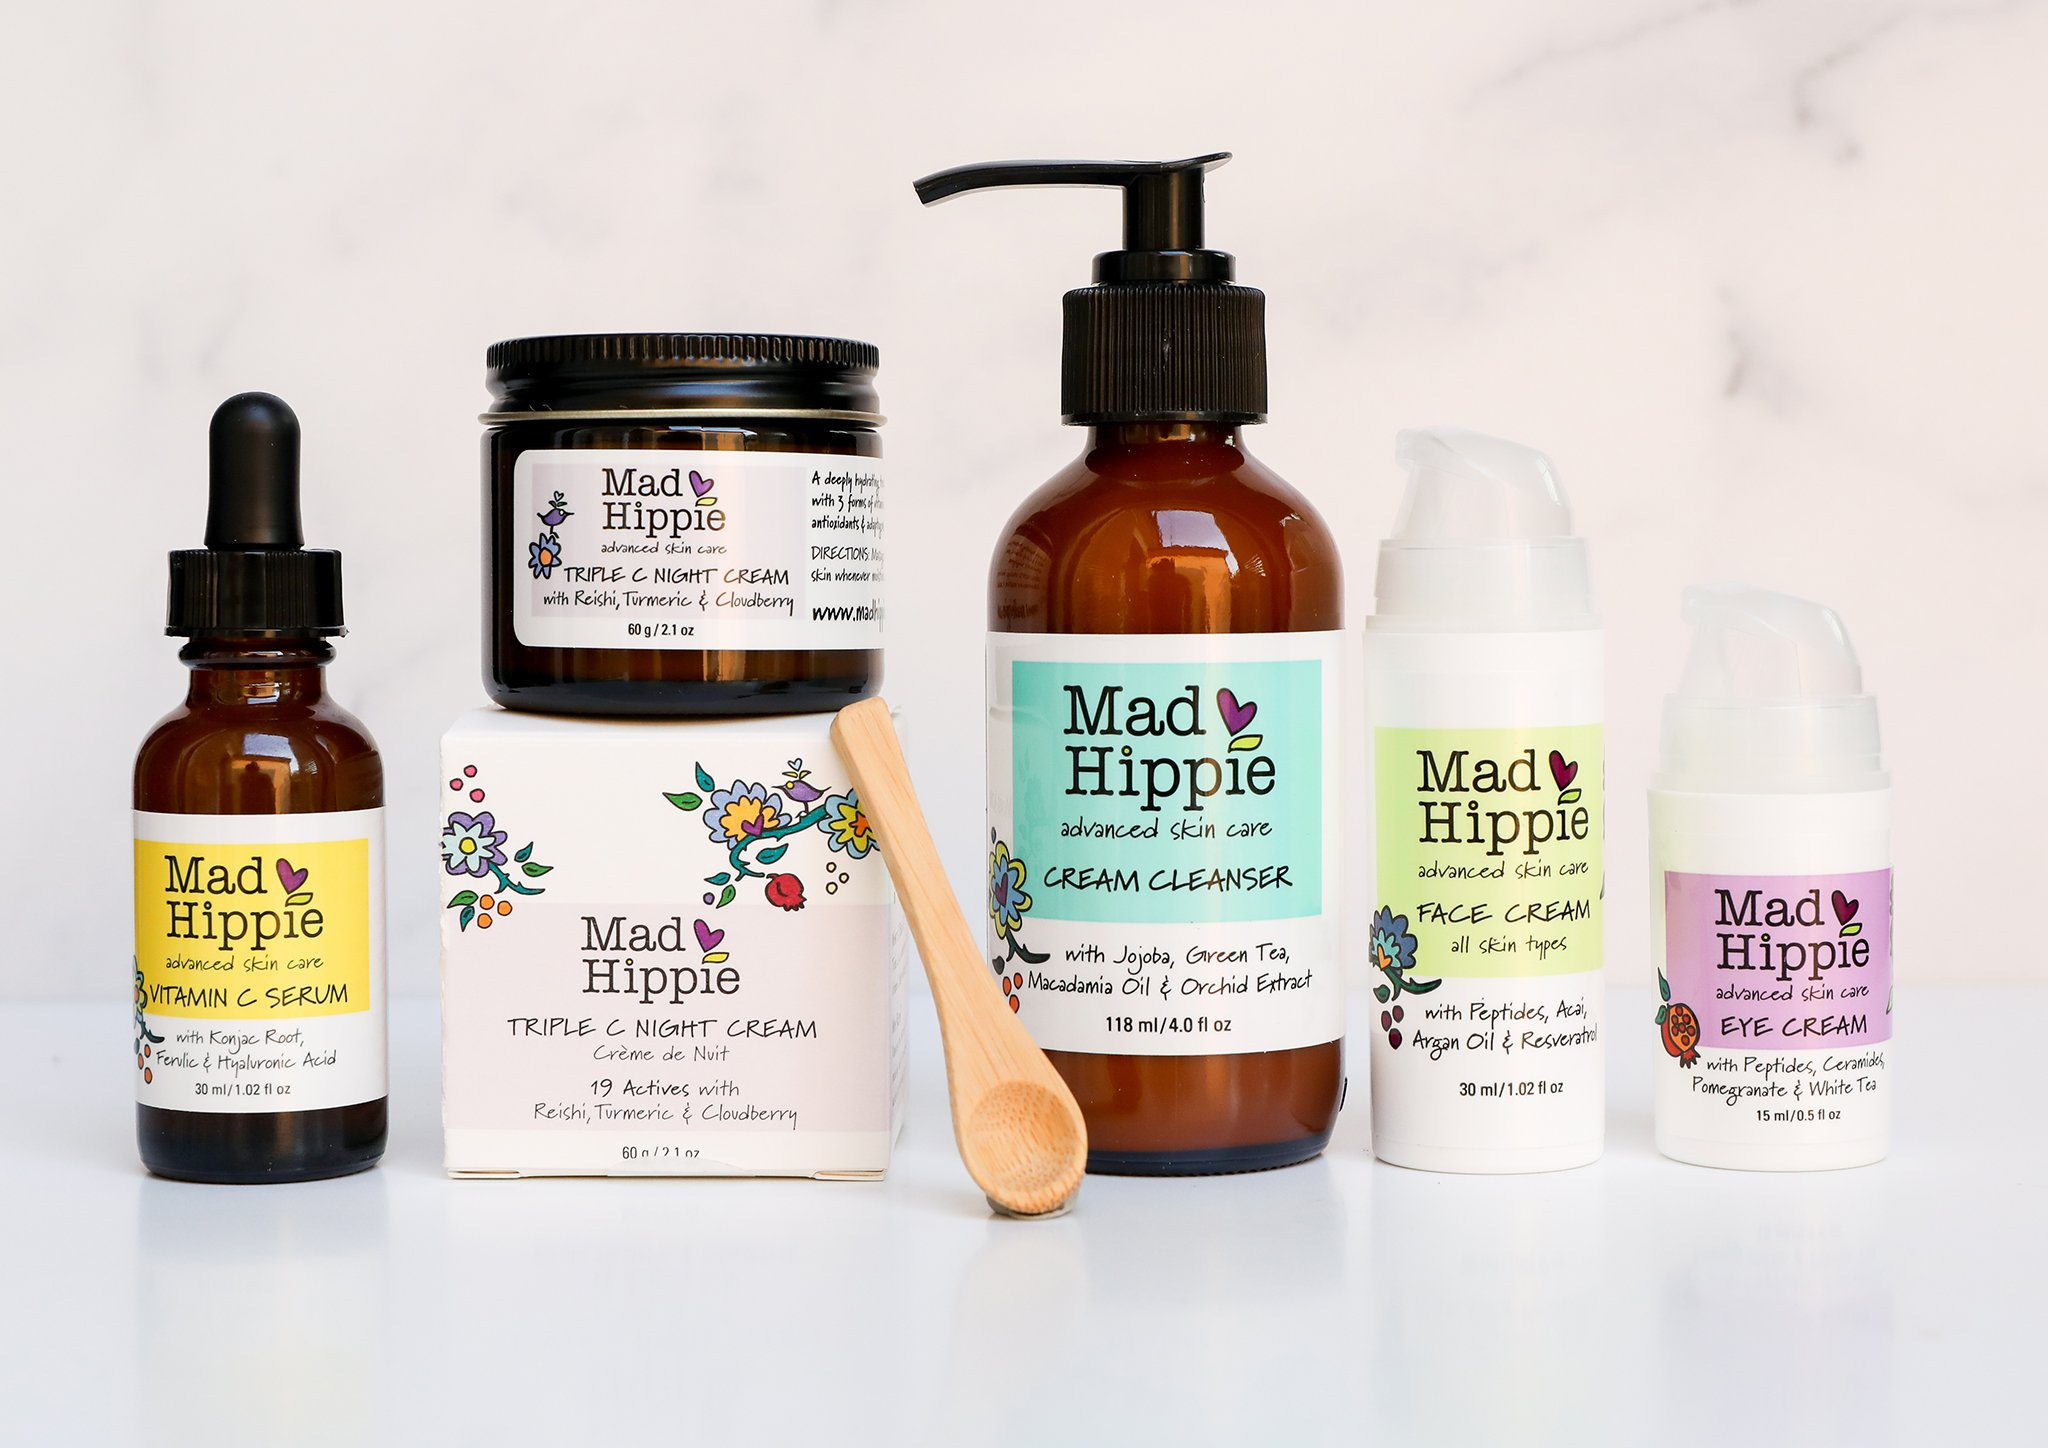 Assorted beauty products from the Mad Hippie beauty collection